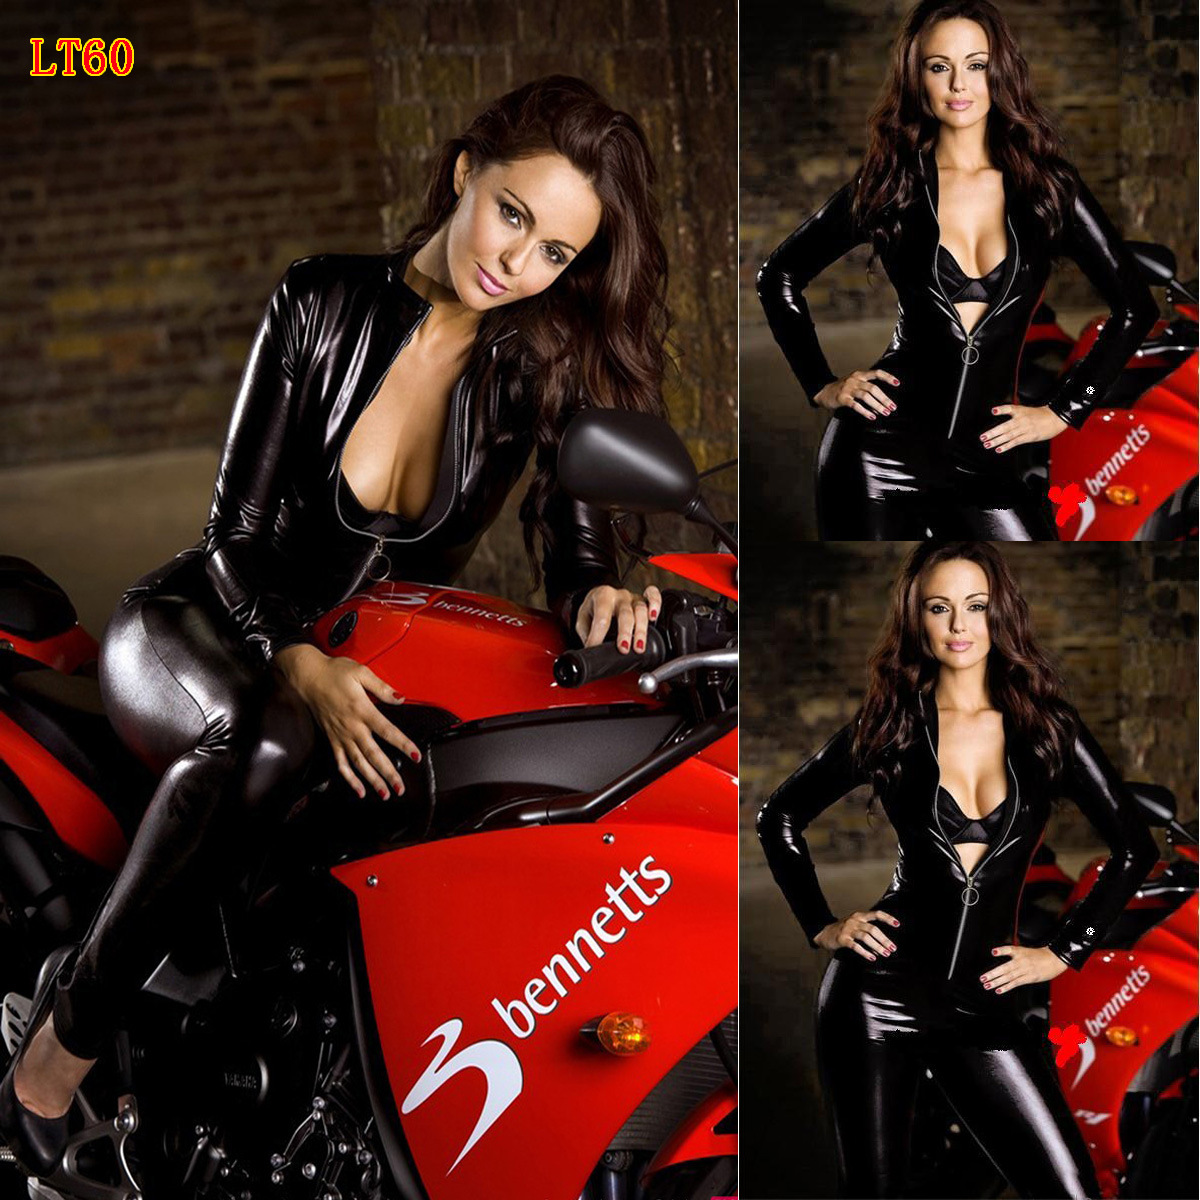 New Sexy Women Black Patent Leather Jumpsuit Bondage Catsuit Zip Leotard Skinny Bodysuit Rompers Overalls Motorcycle Clothing